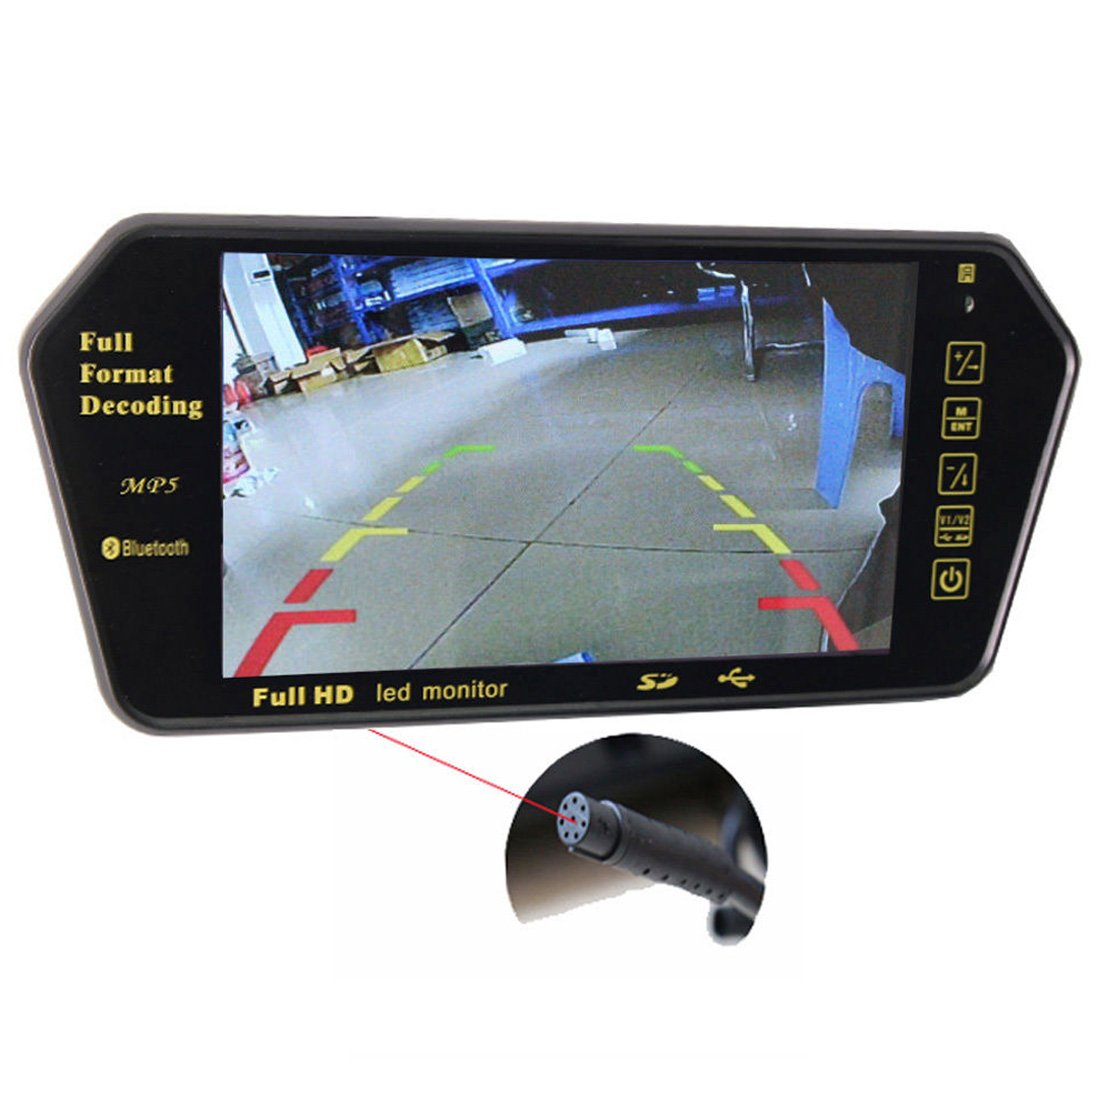 ponpy 7インチカラーTFT LCD画面フルHD 800 X 480 FM USB SD mp5 Bluetooth Car Rear View in-mirrorビデオモニタ B076VLSGXB